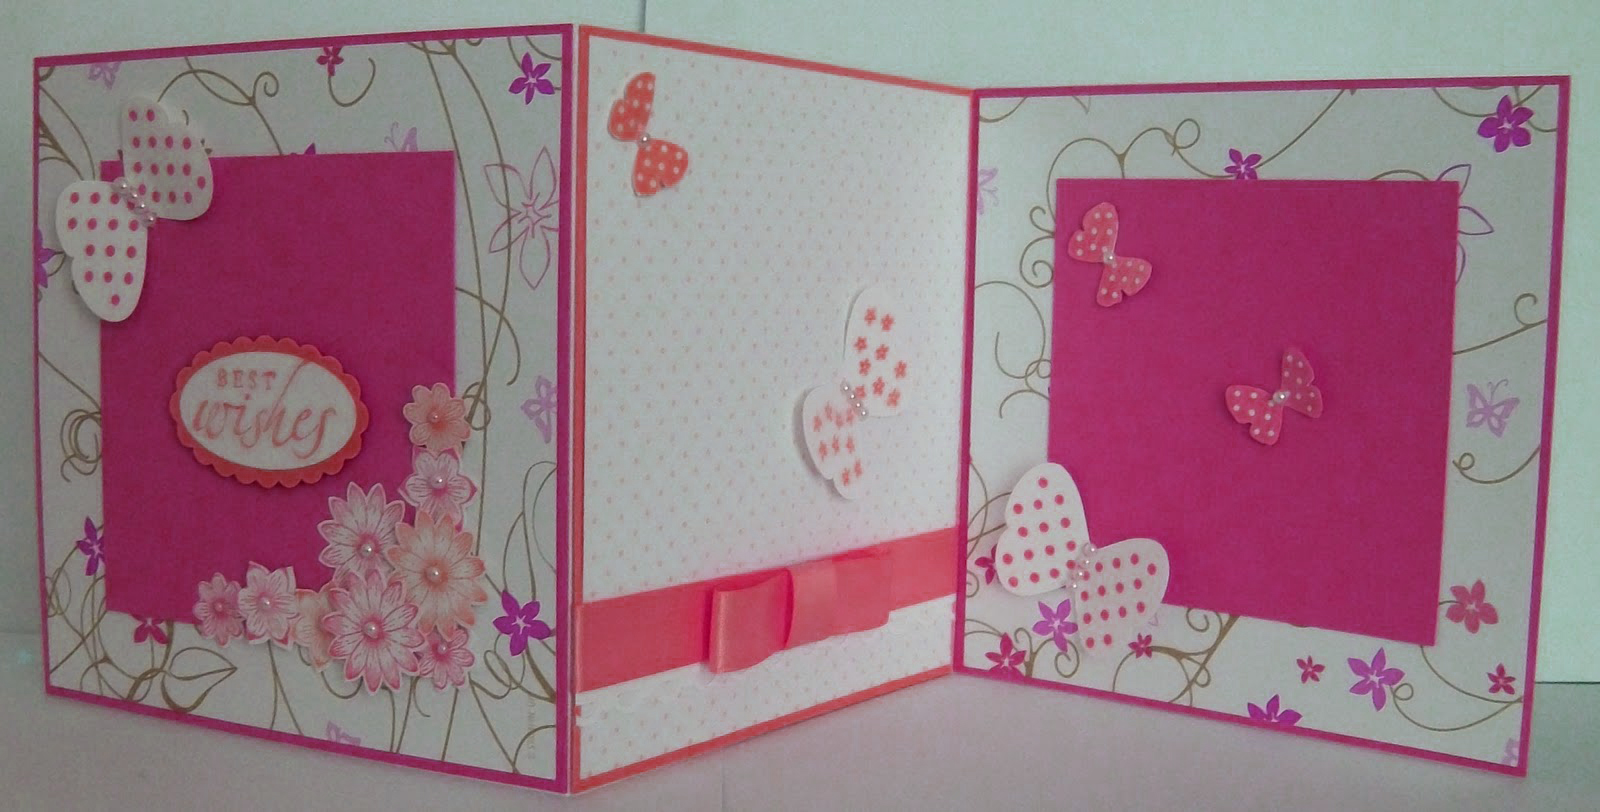 ideas for making birthday greeting cards at home ; handmade-cards-ideas-your-son-birthday-trends-ever_582737